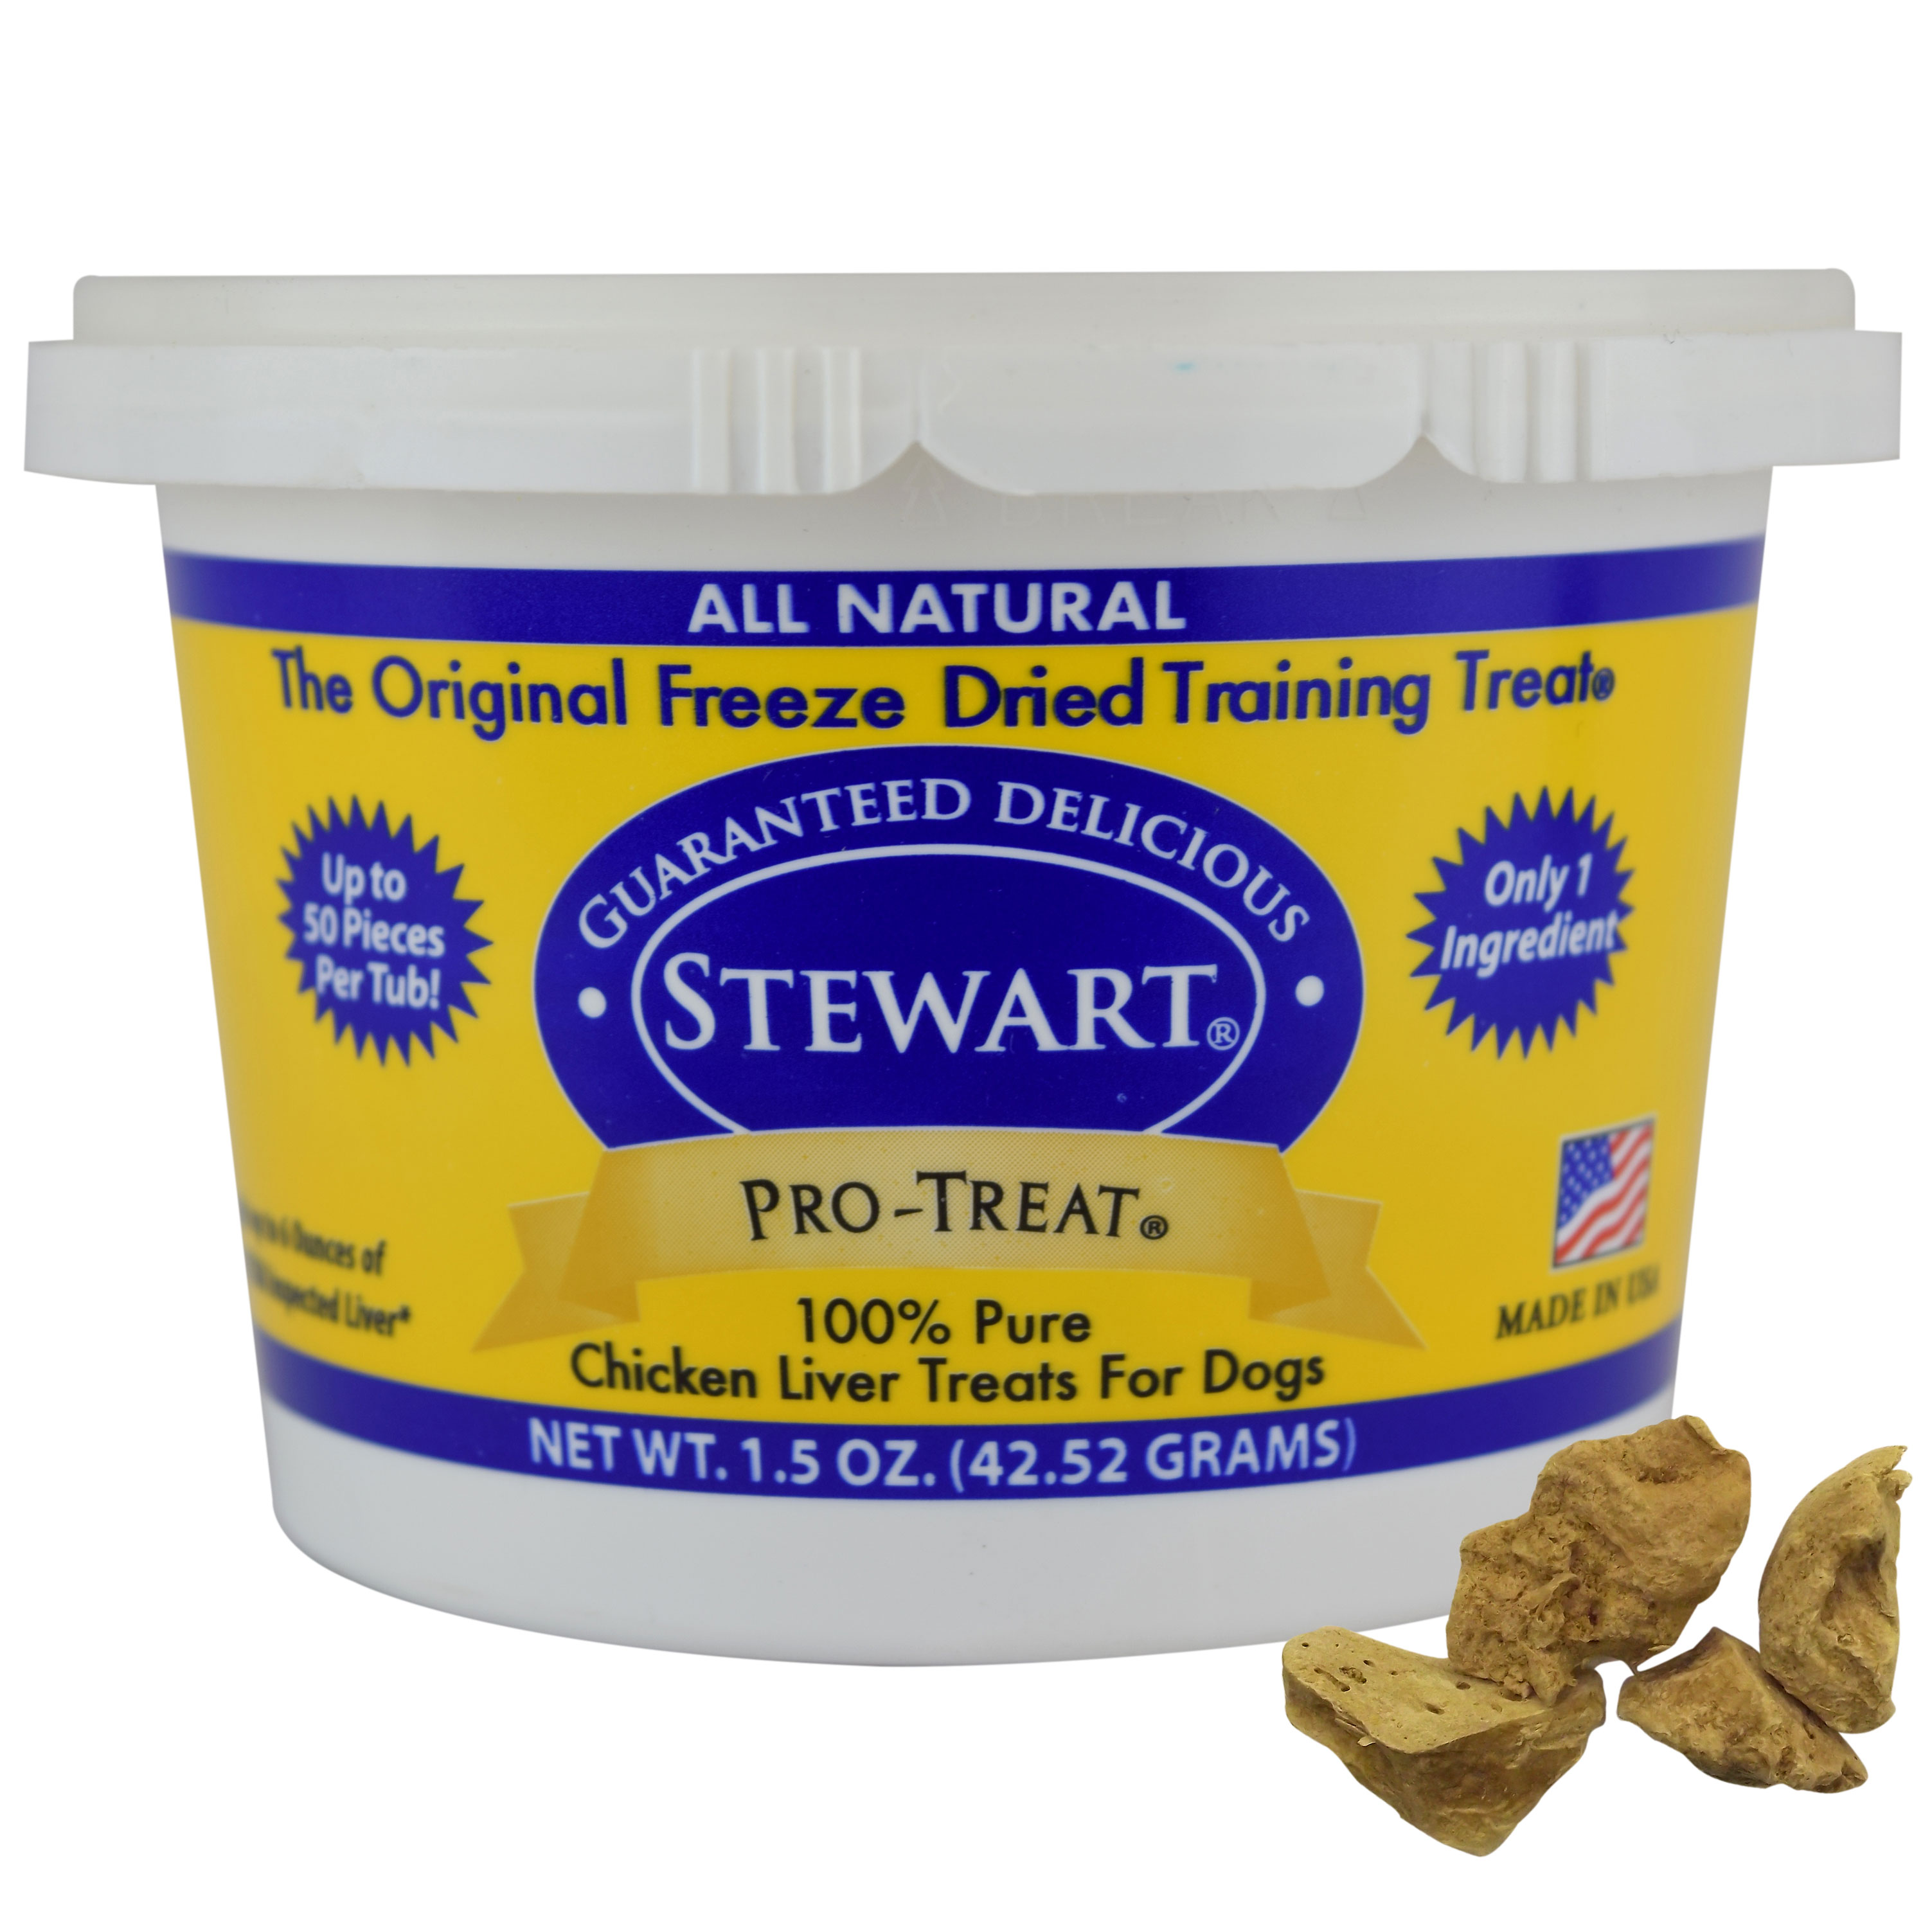 Stewart Freeze Dried Chicken Liver by Pro-Treat 1.5 oz. Tub